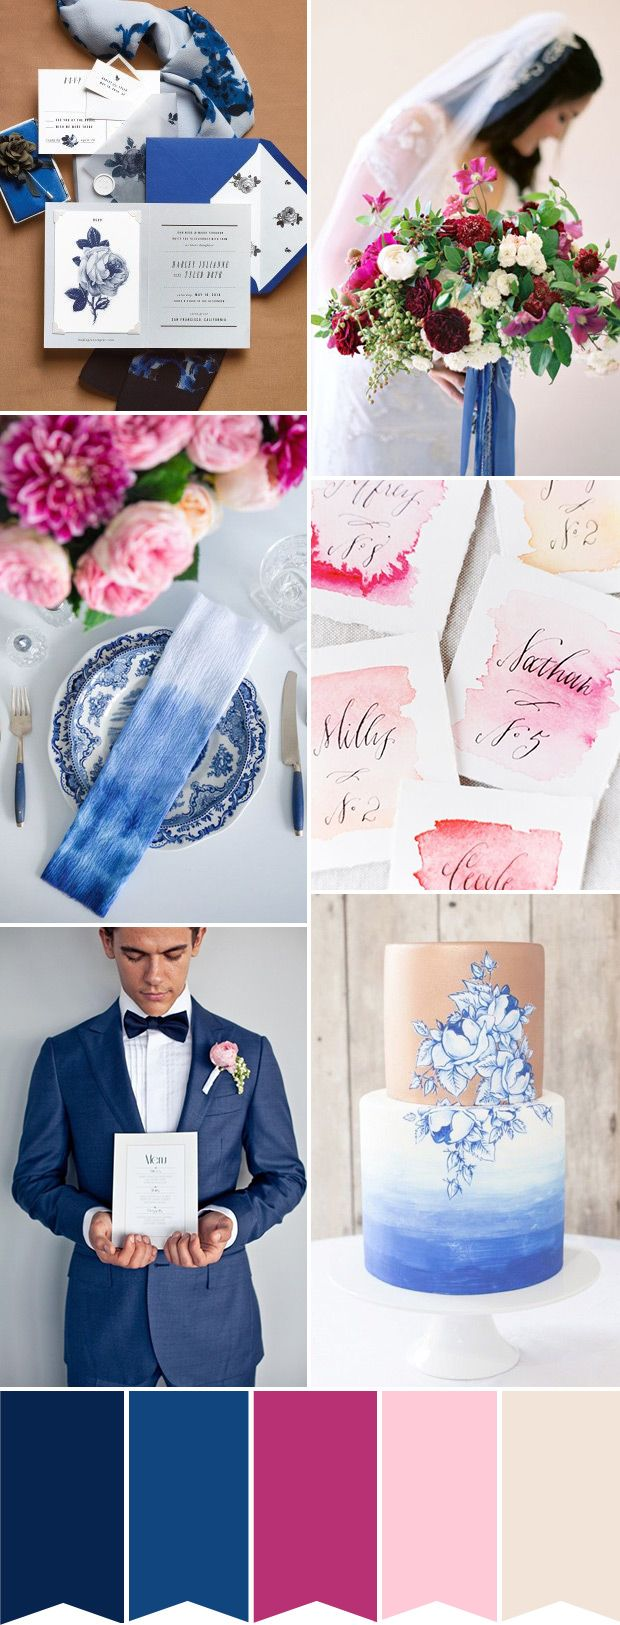 Modern meets traditional in this blue and pink wedding color palette | www.onefabday.com